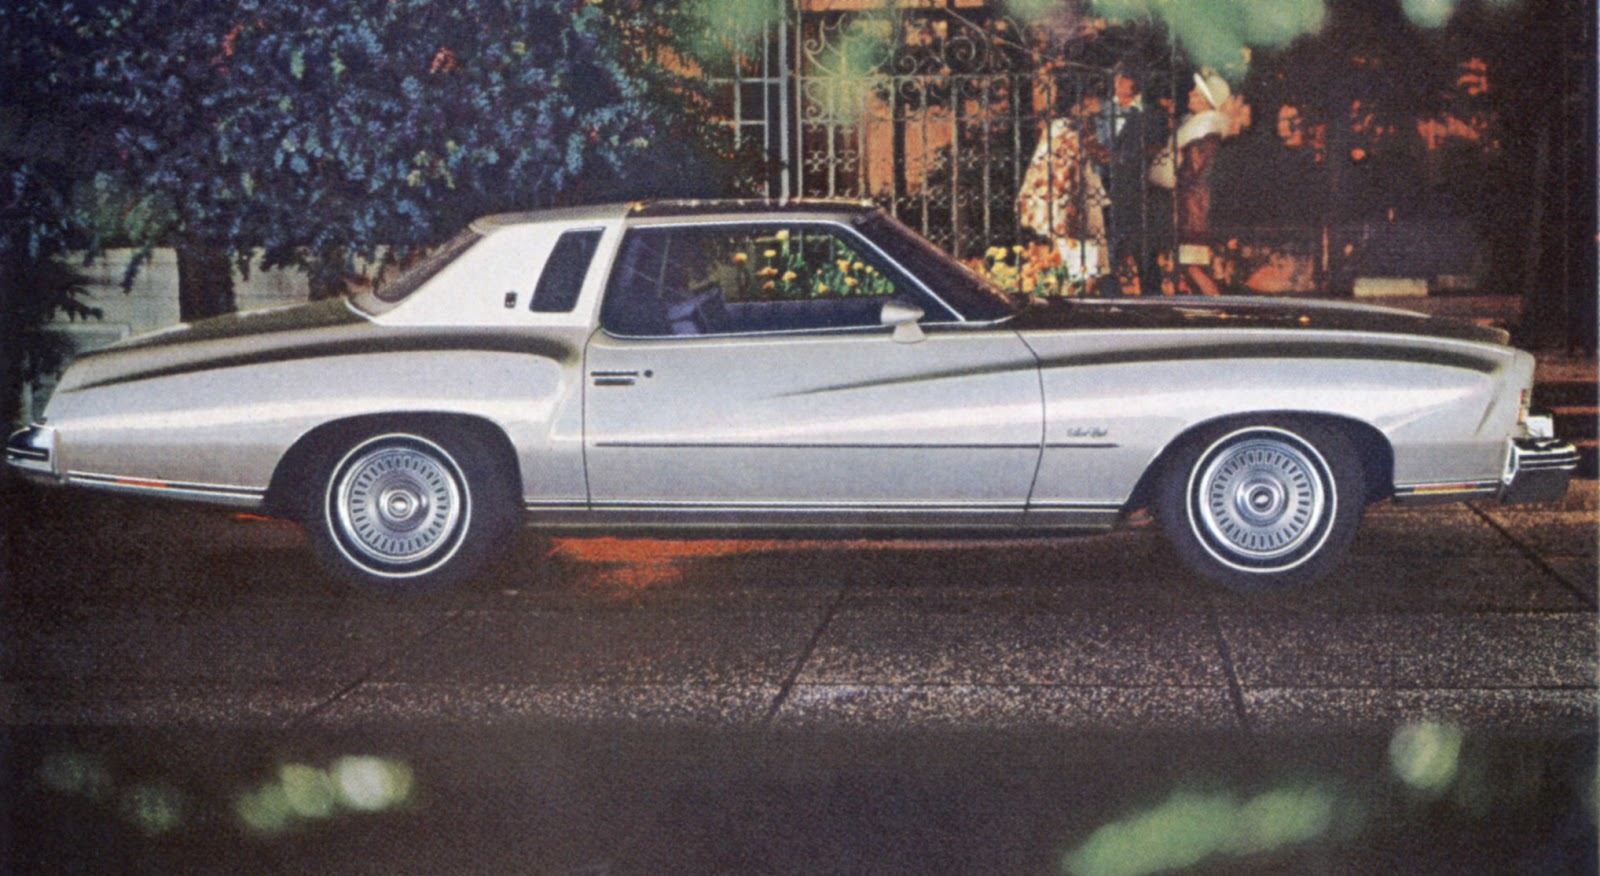 medium resolution of 1973 1977 monte carlo baroque luxury car